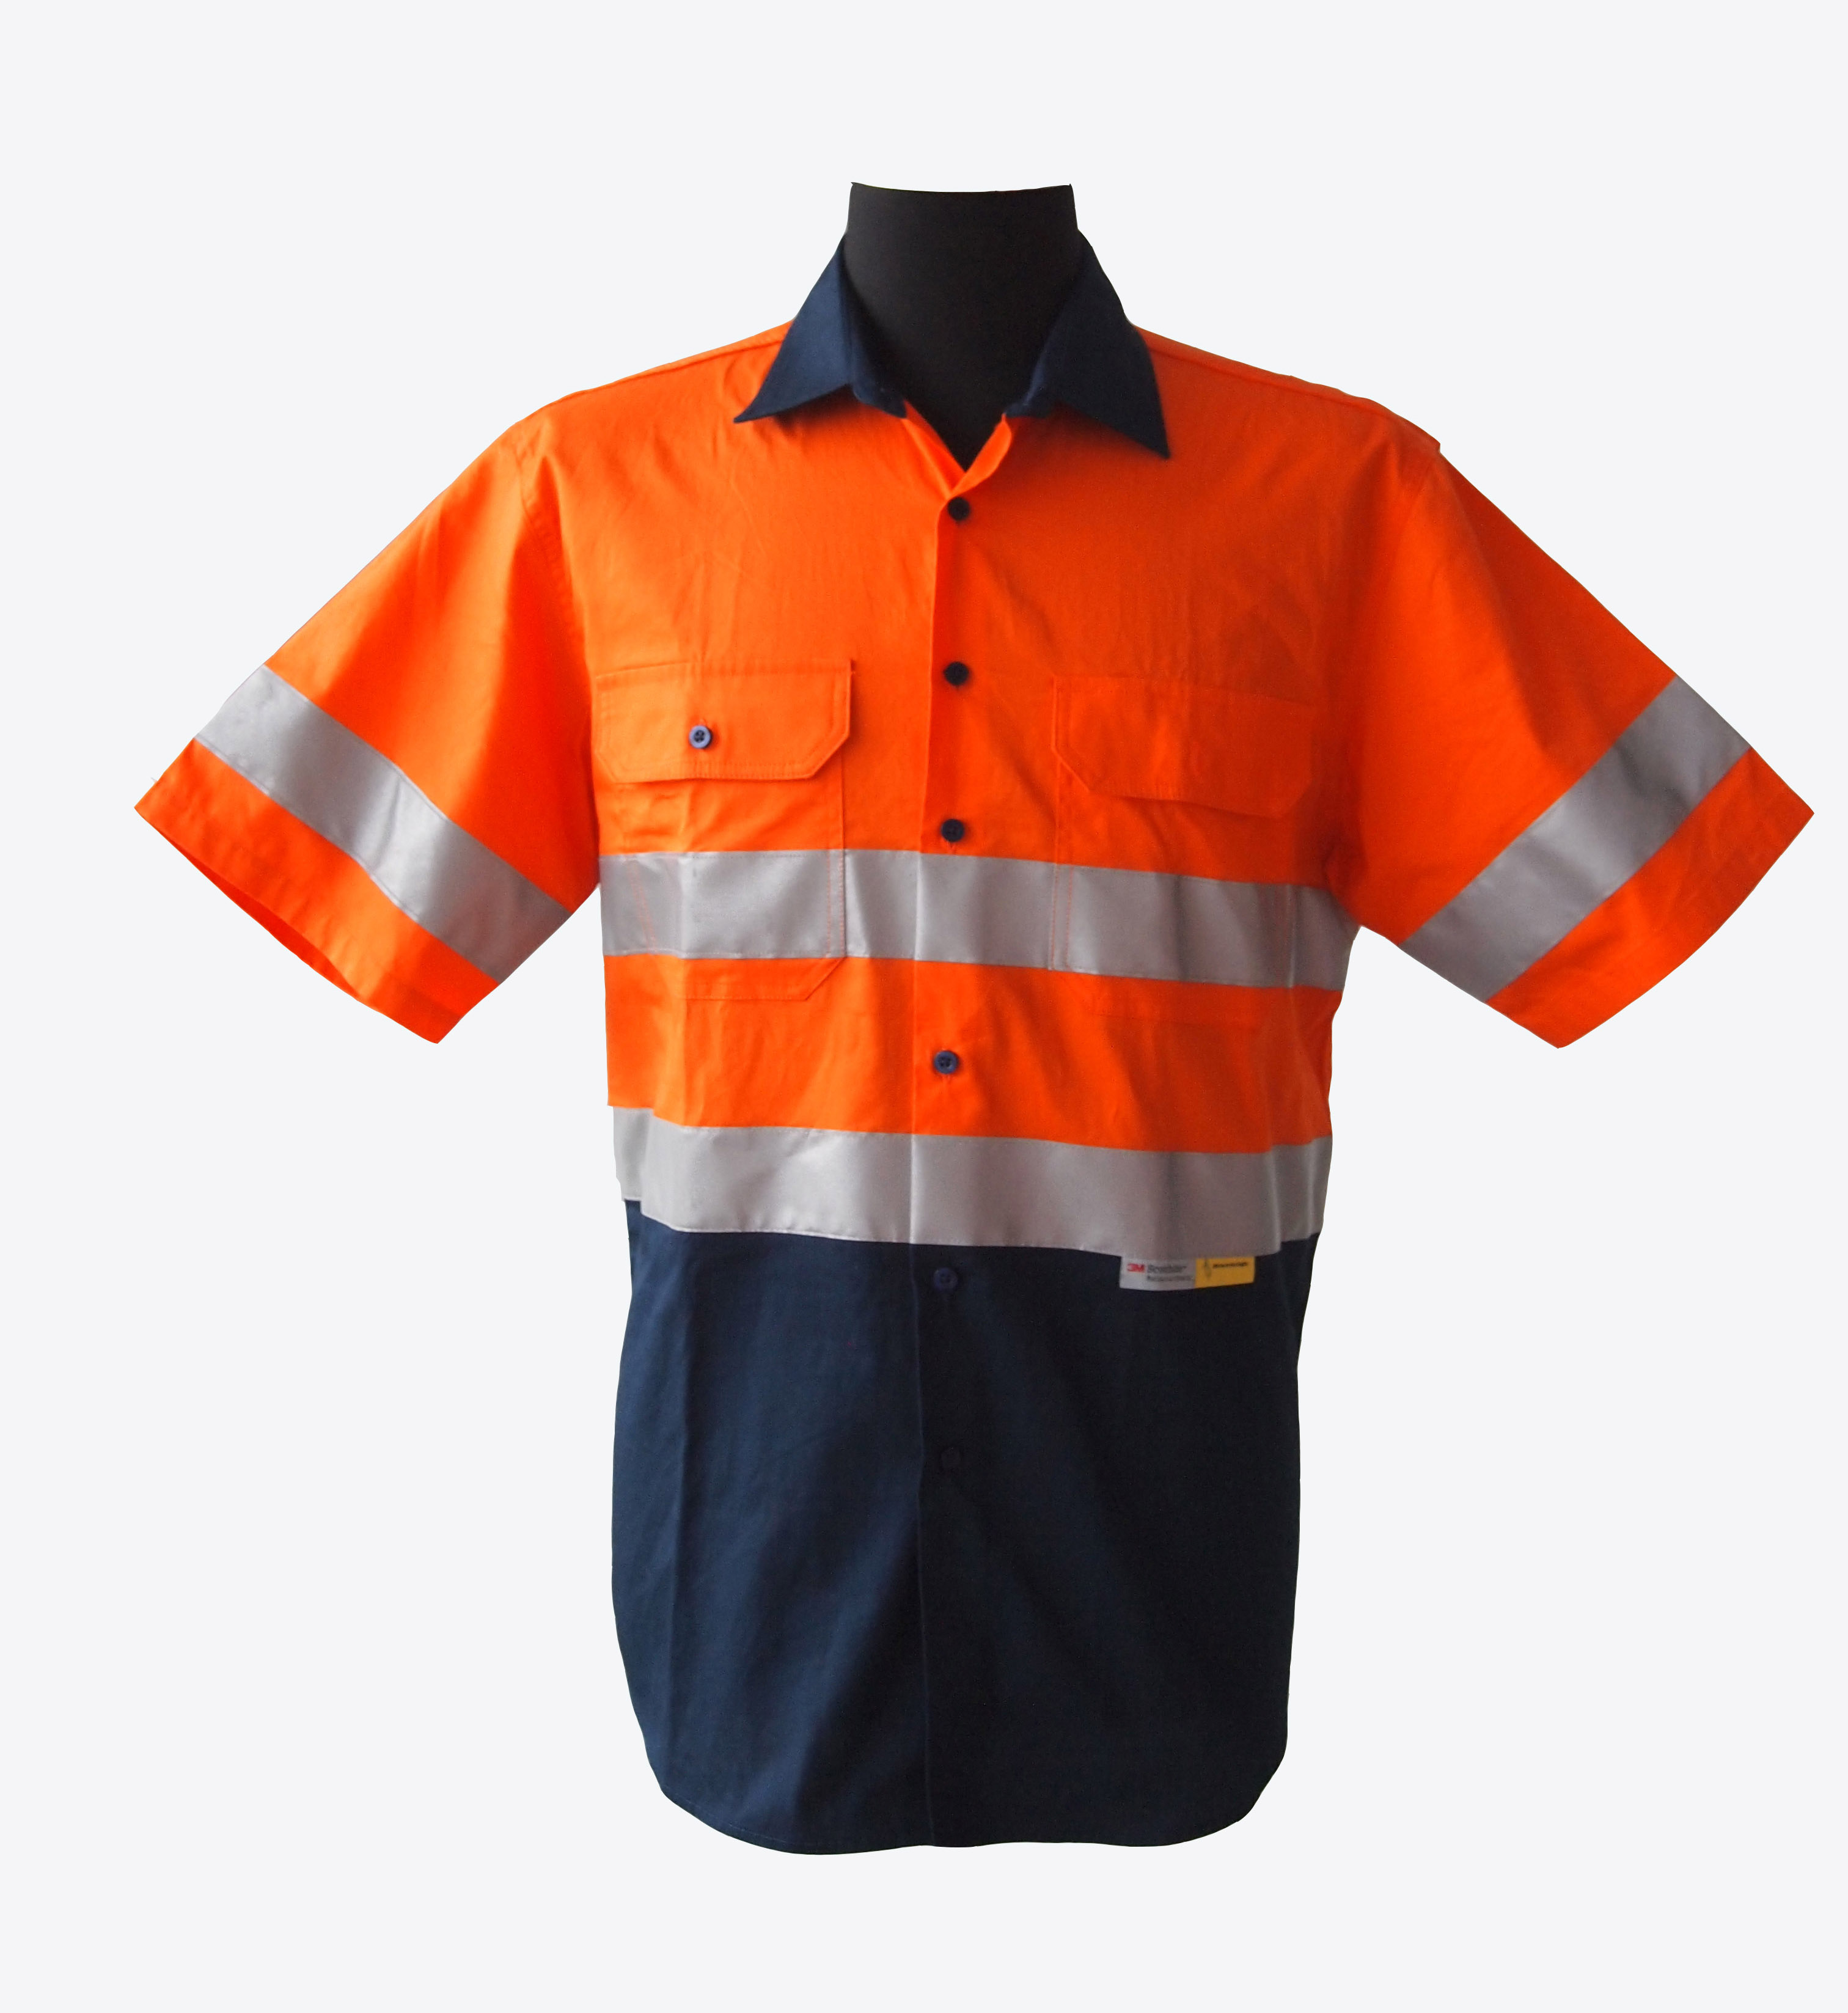 19 Reflective Work Shirts (1)